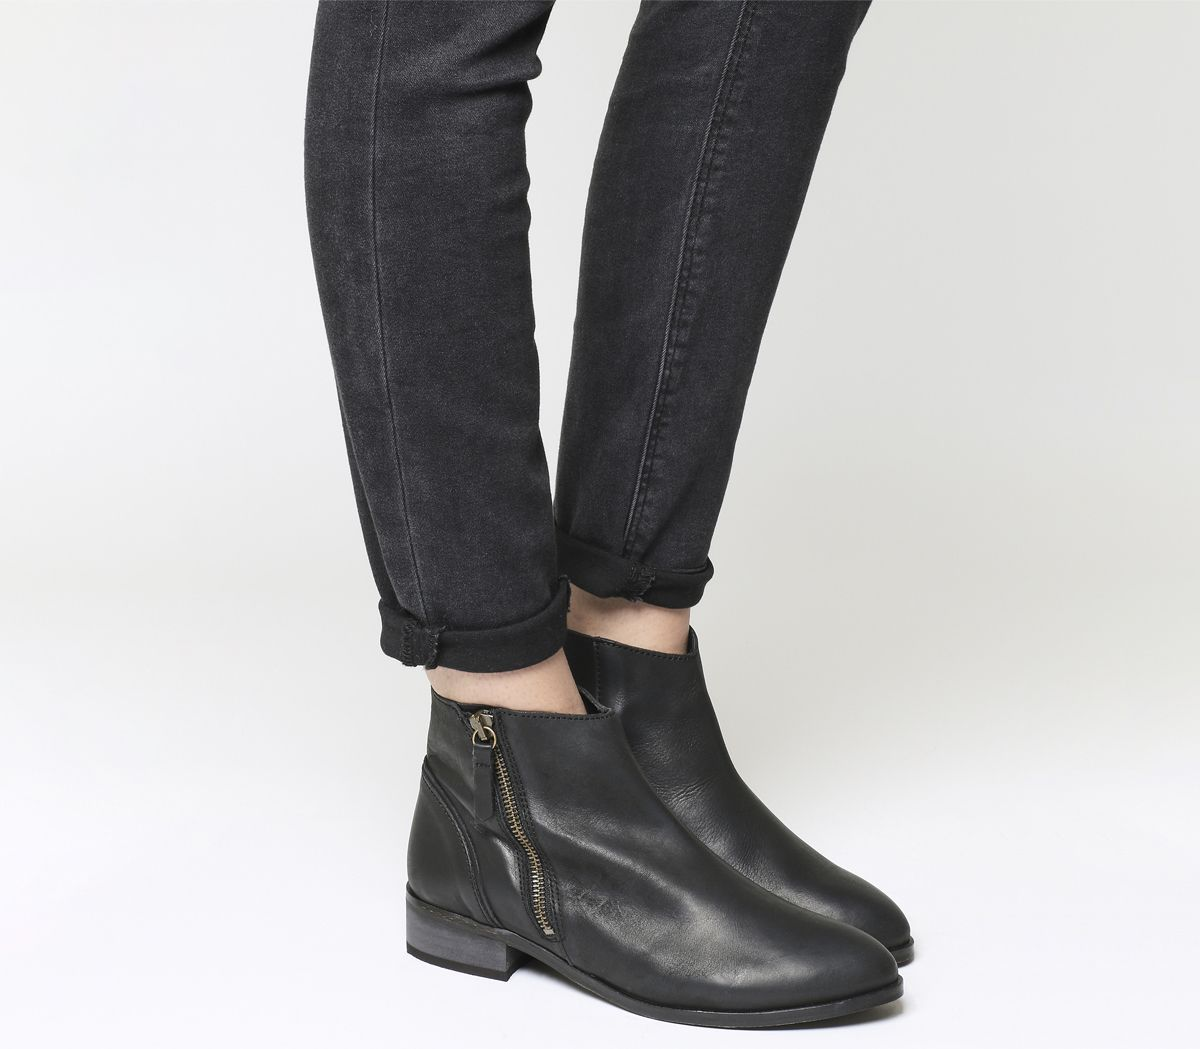 f85dd04b041 Accent Side Zip Boots